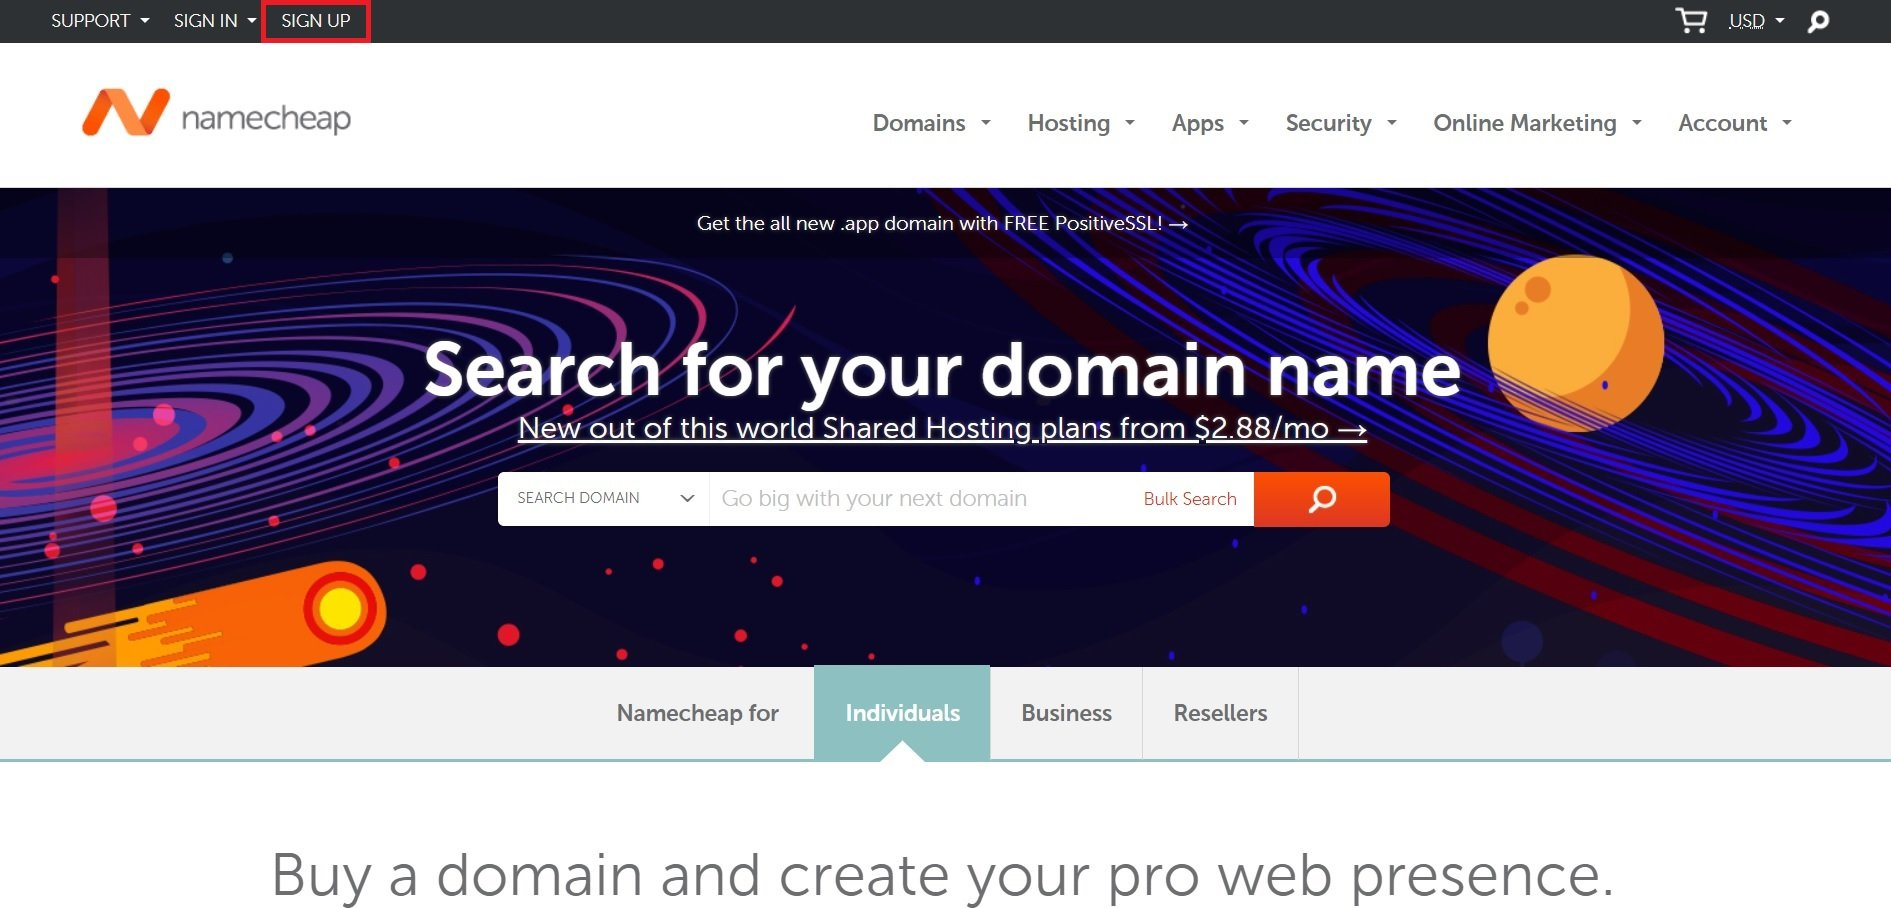 namecheap homepage image